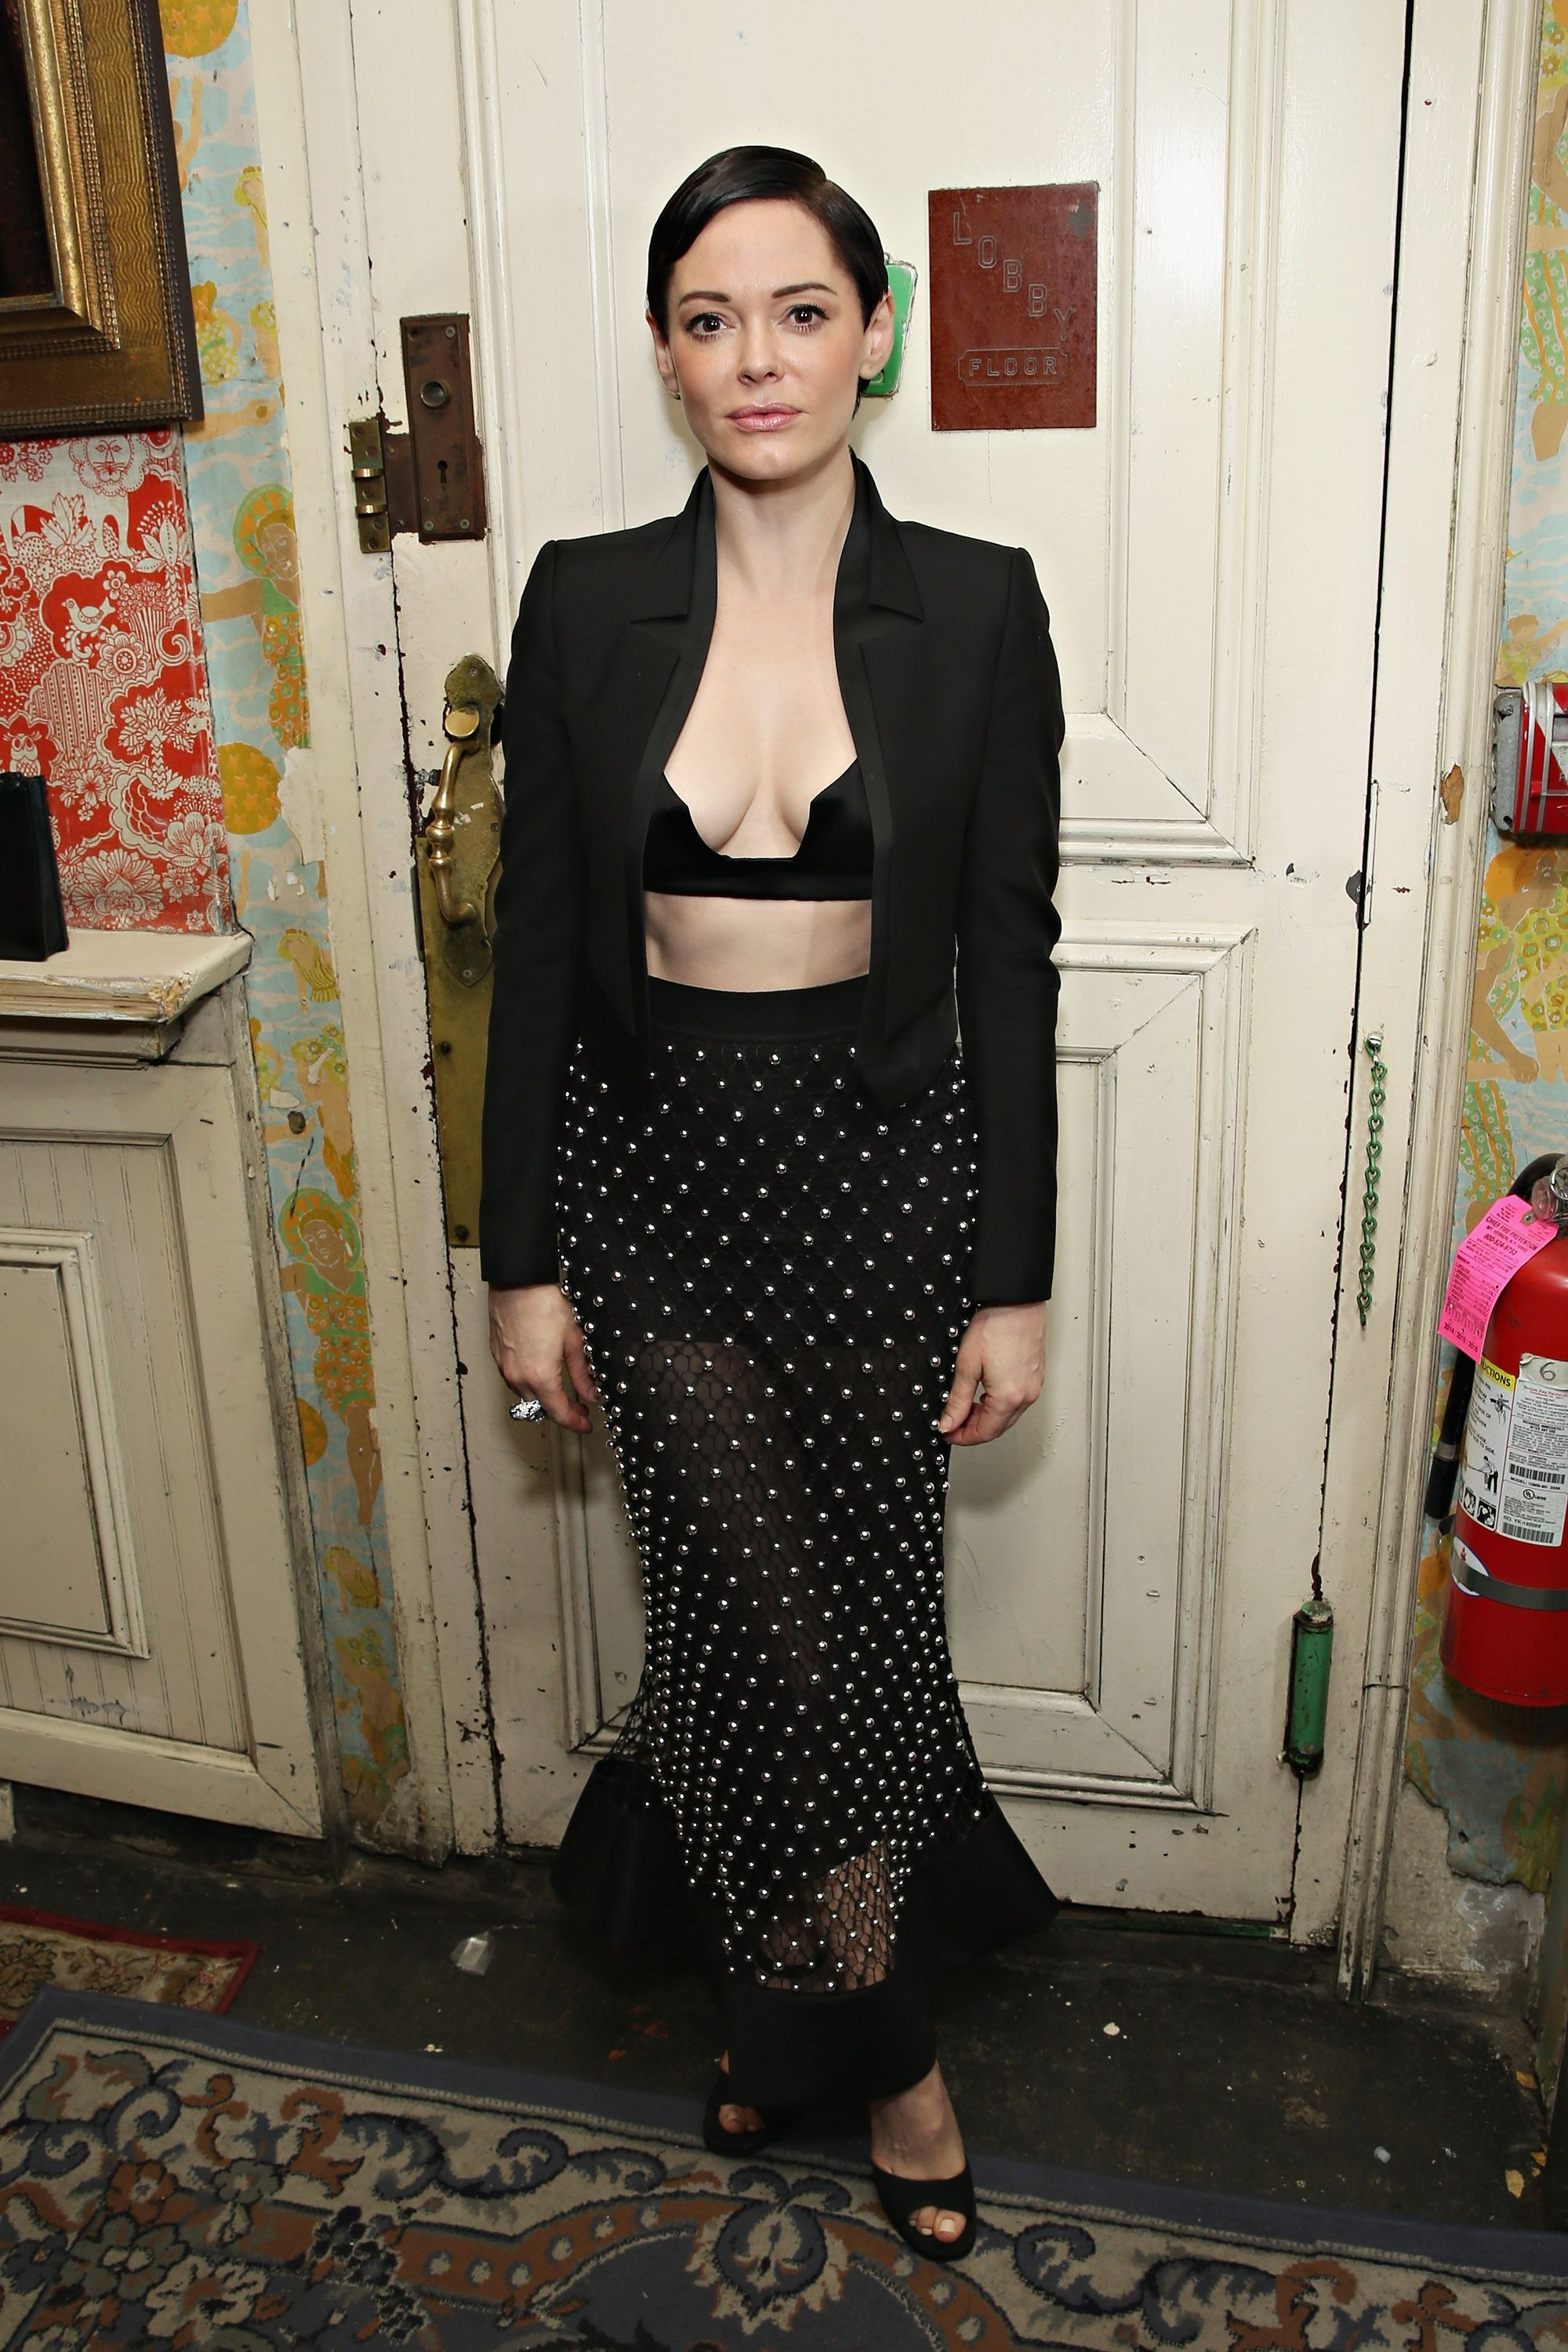 Rose McGowan attends the Casa Reale Fine Jewelry Launch at The Box on June 17, 2015 in New York City.